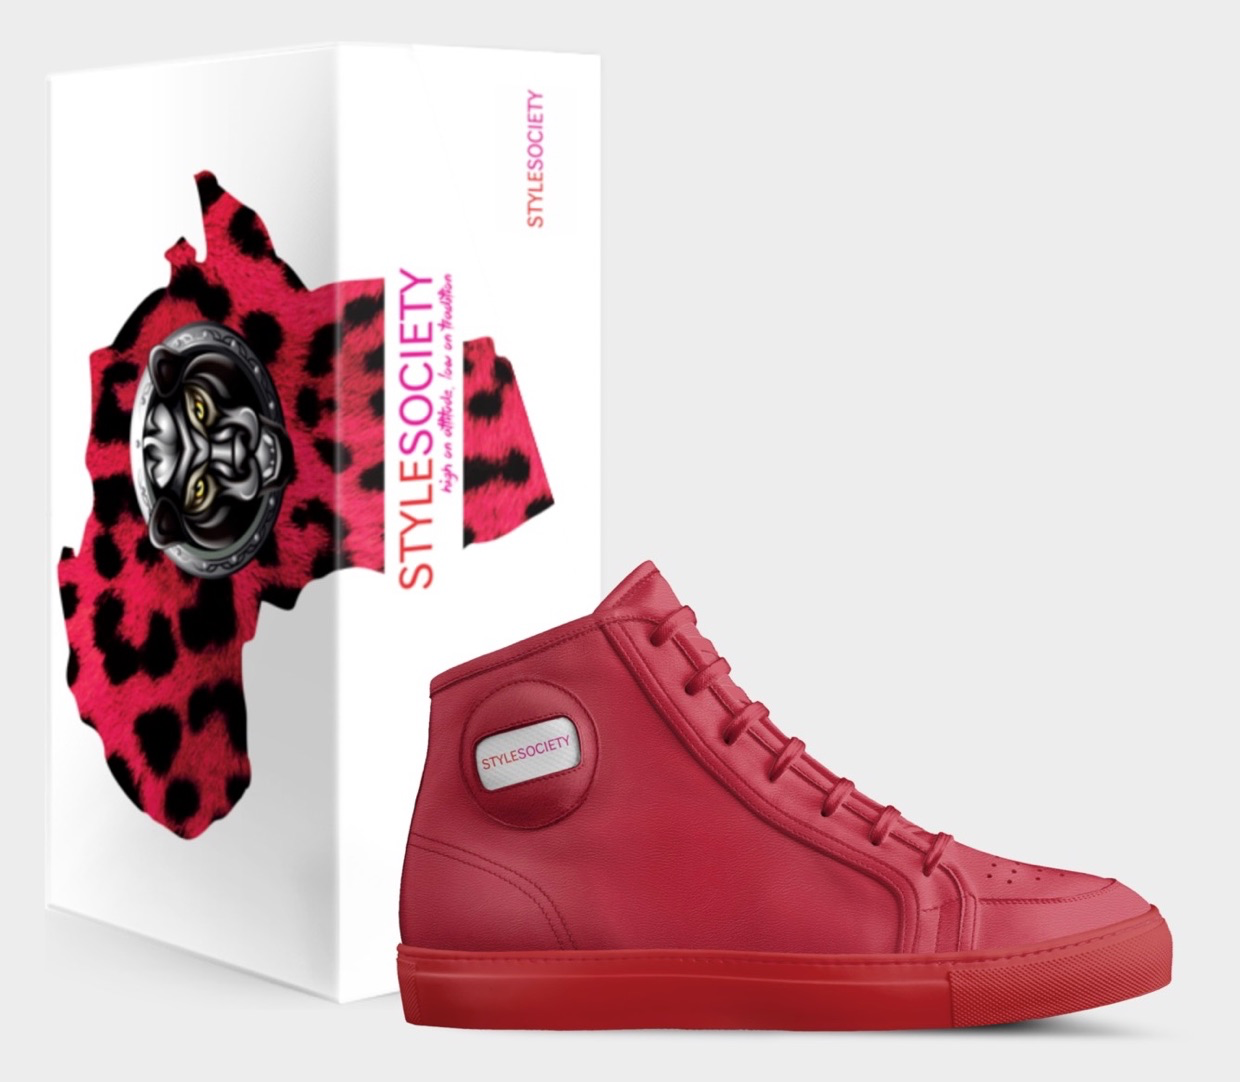 ALIVESHOES   StyleSociety Limited Edition High Top Sneaker